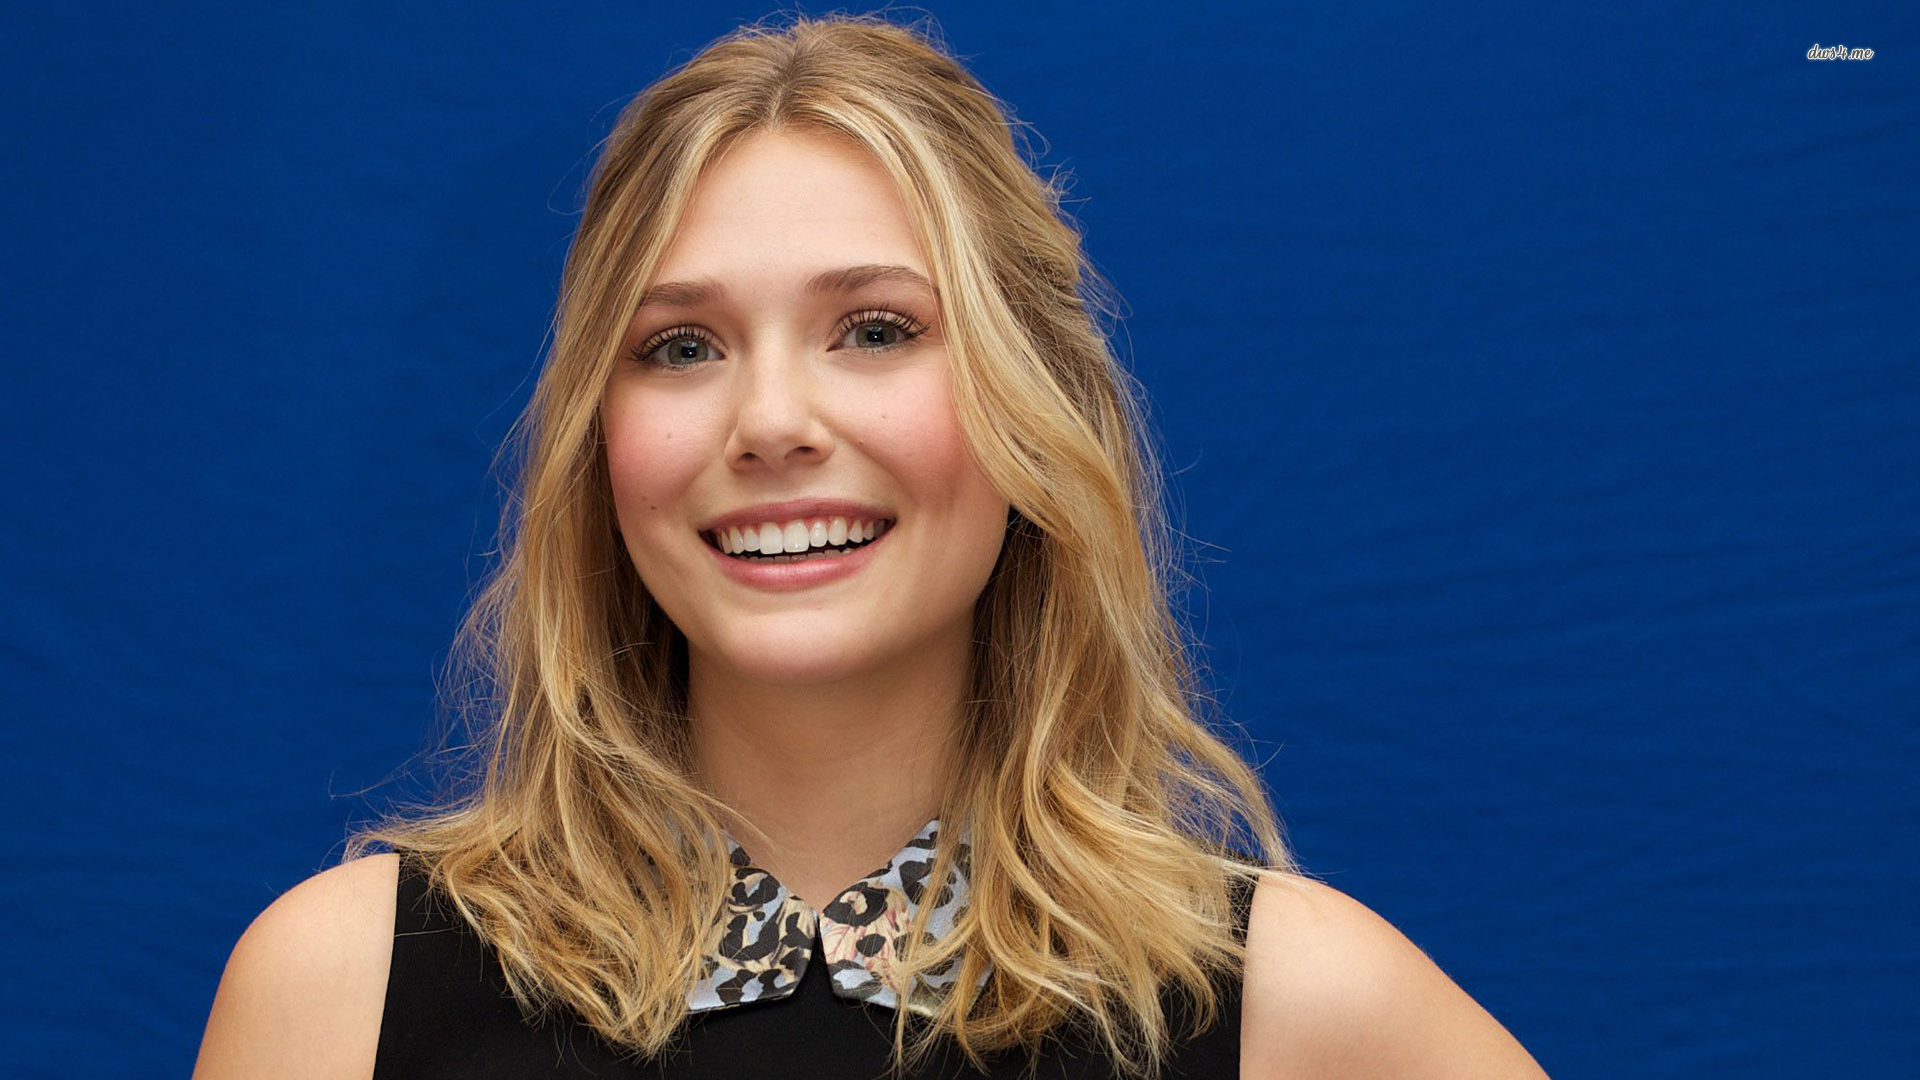 Elizabeth Olsen HD wallpapers download 1920x1080